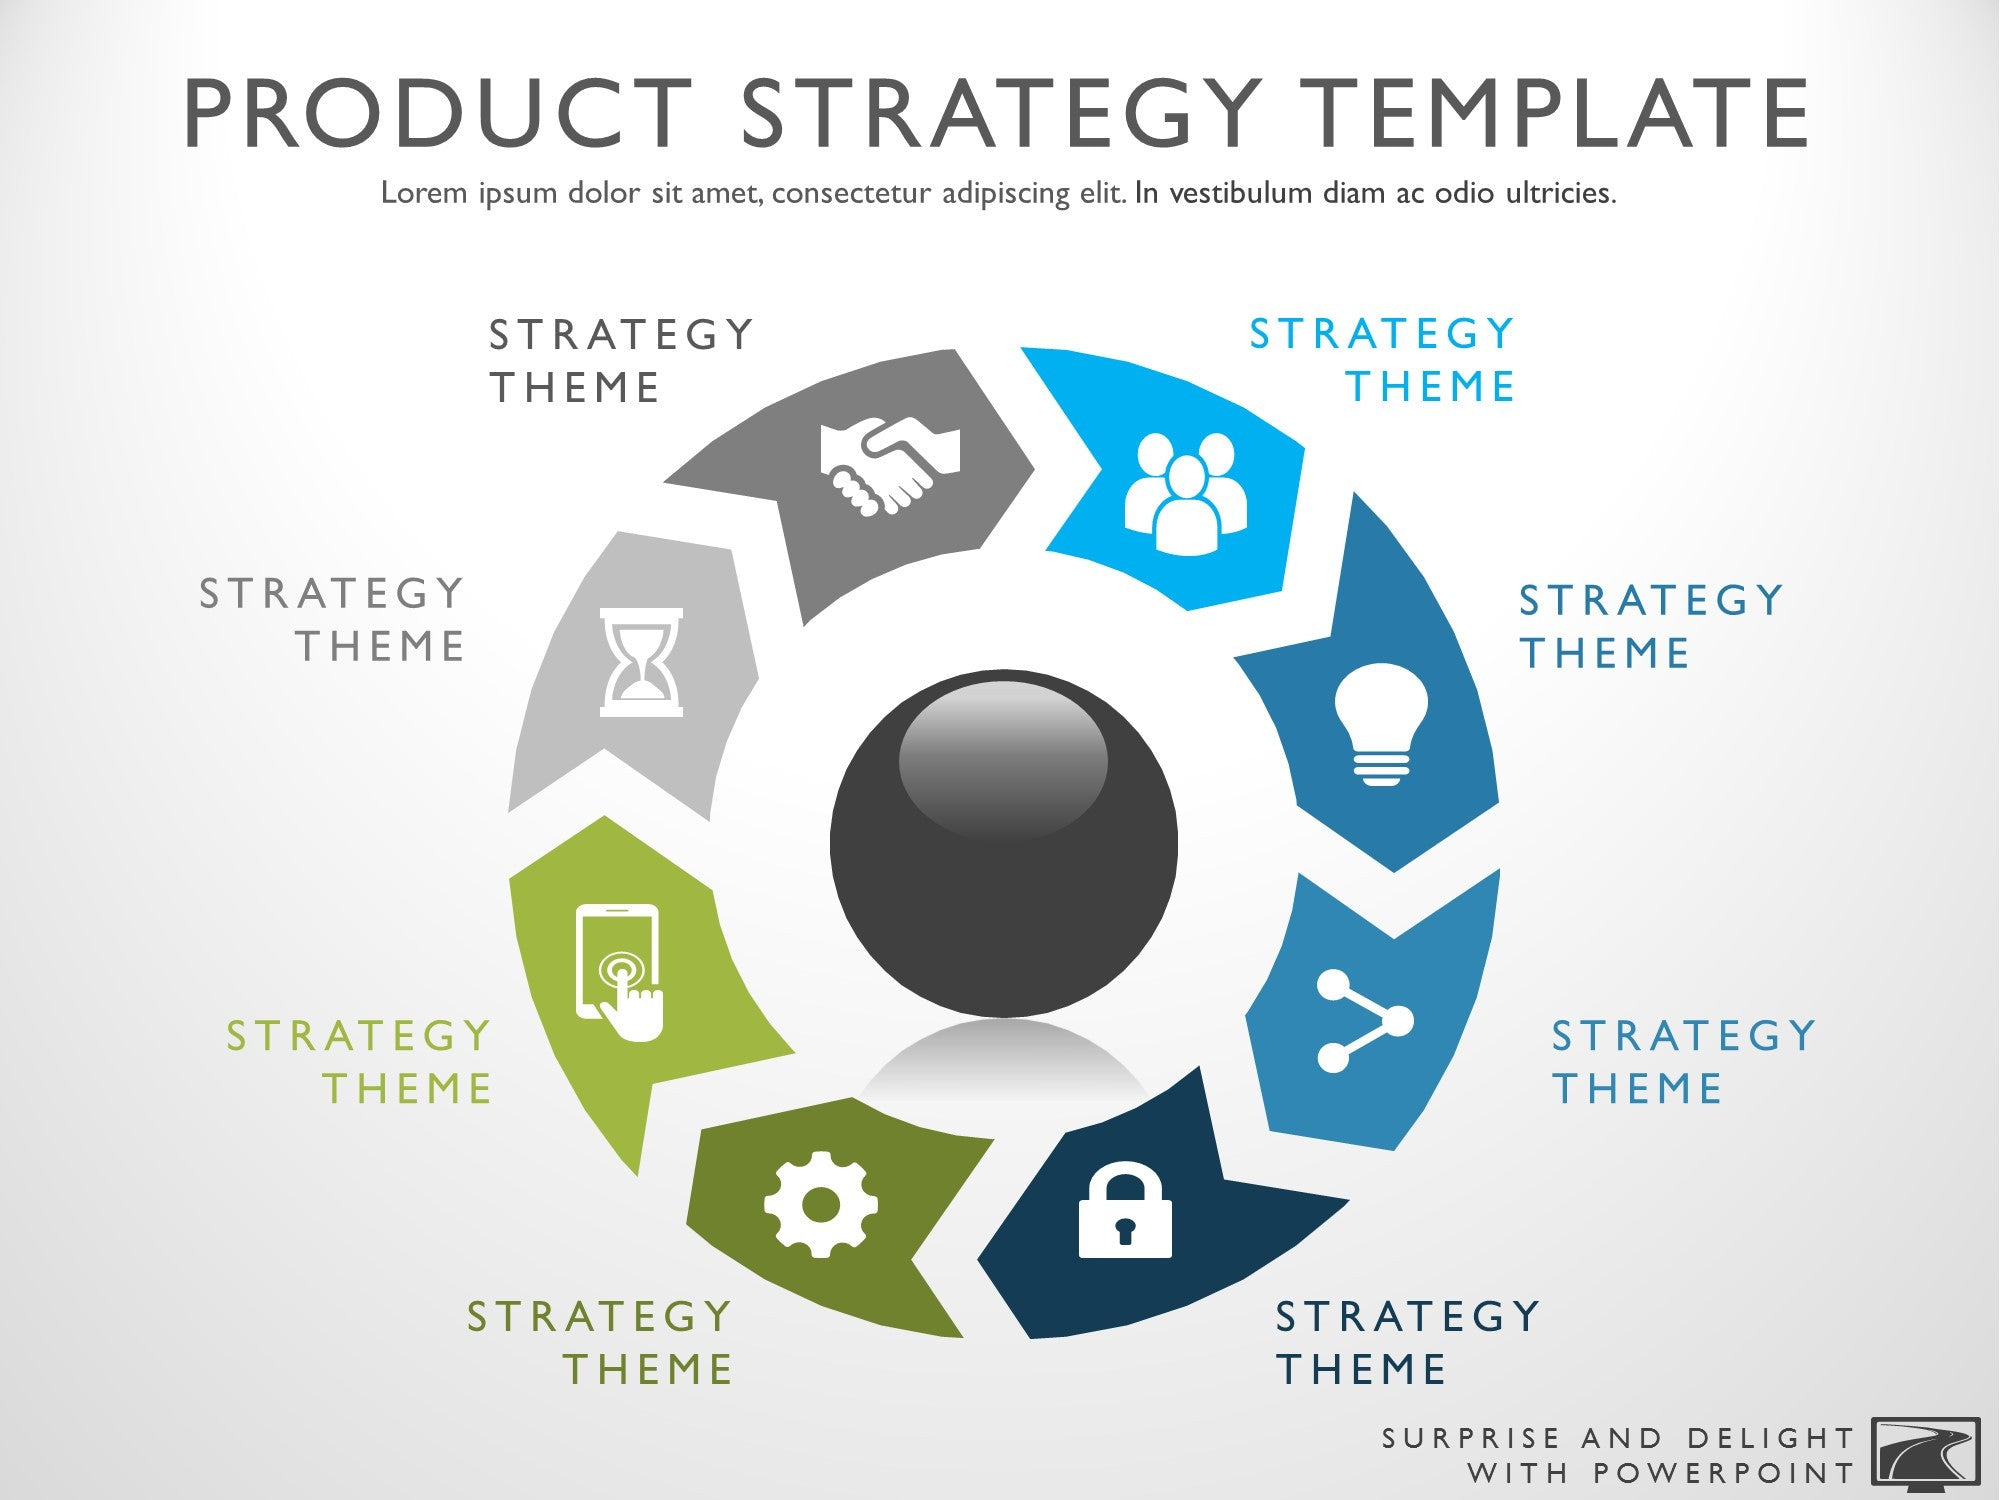 strategy template powerpoint roadmap icon templates themes diagram selection myproductroadmap management arrows circular steps sold